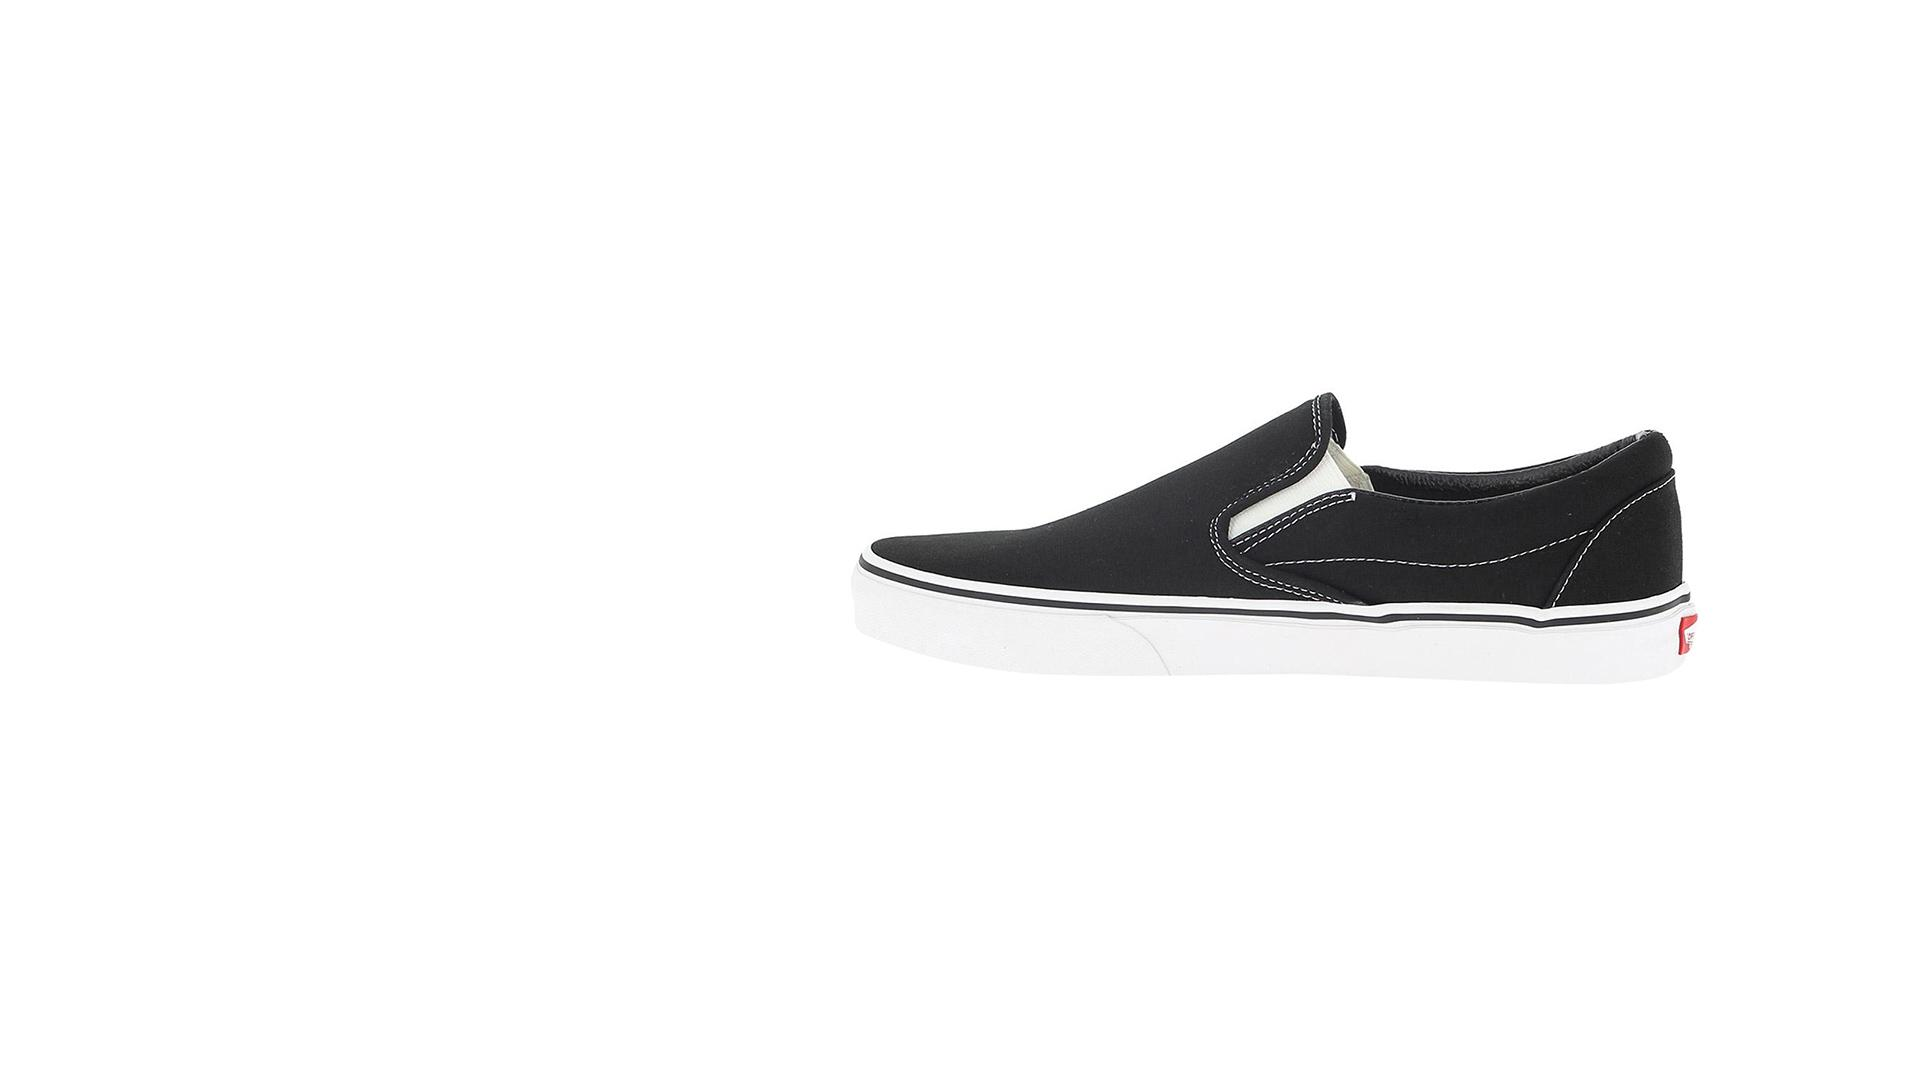 Slip-on Trainers - 5 After Midnight - Up In Here